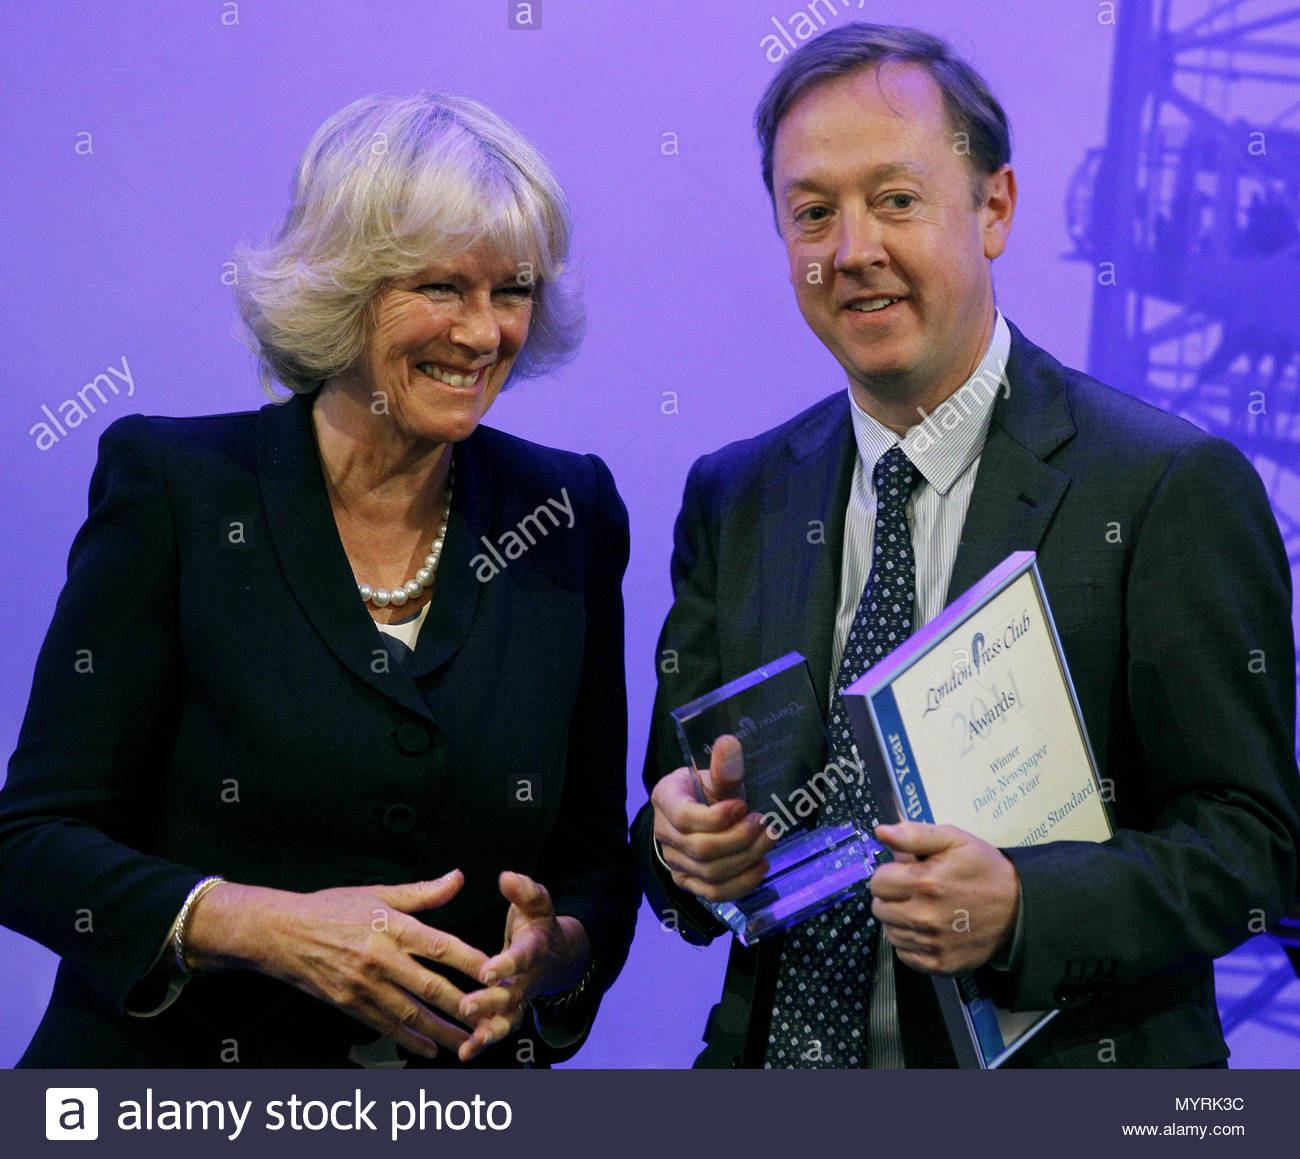 File photo dated 11/5/2011 of the Duchess of Cornwall presenting Geordie Greig, Editor of the London Evening Standard with the Daily Newspaper of the Year Award at the London Press Club Awards in London. Greig's appointment as Daily Mail editor follows the announcement on Wednesday that Paul Dacre is to become chairman and editor in chief of Associated Newspapers. - Stock Image